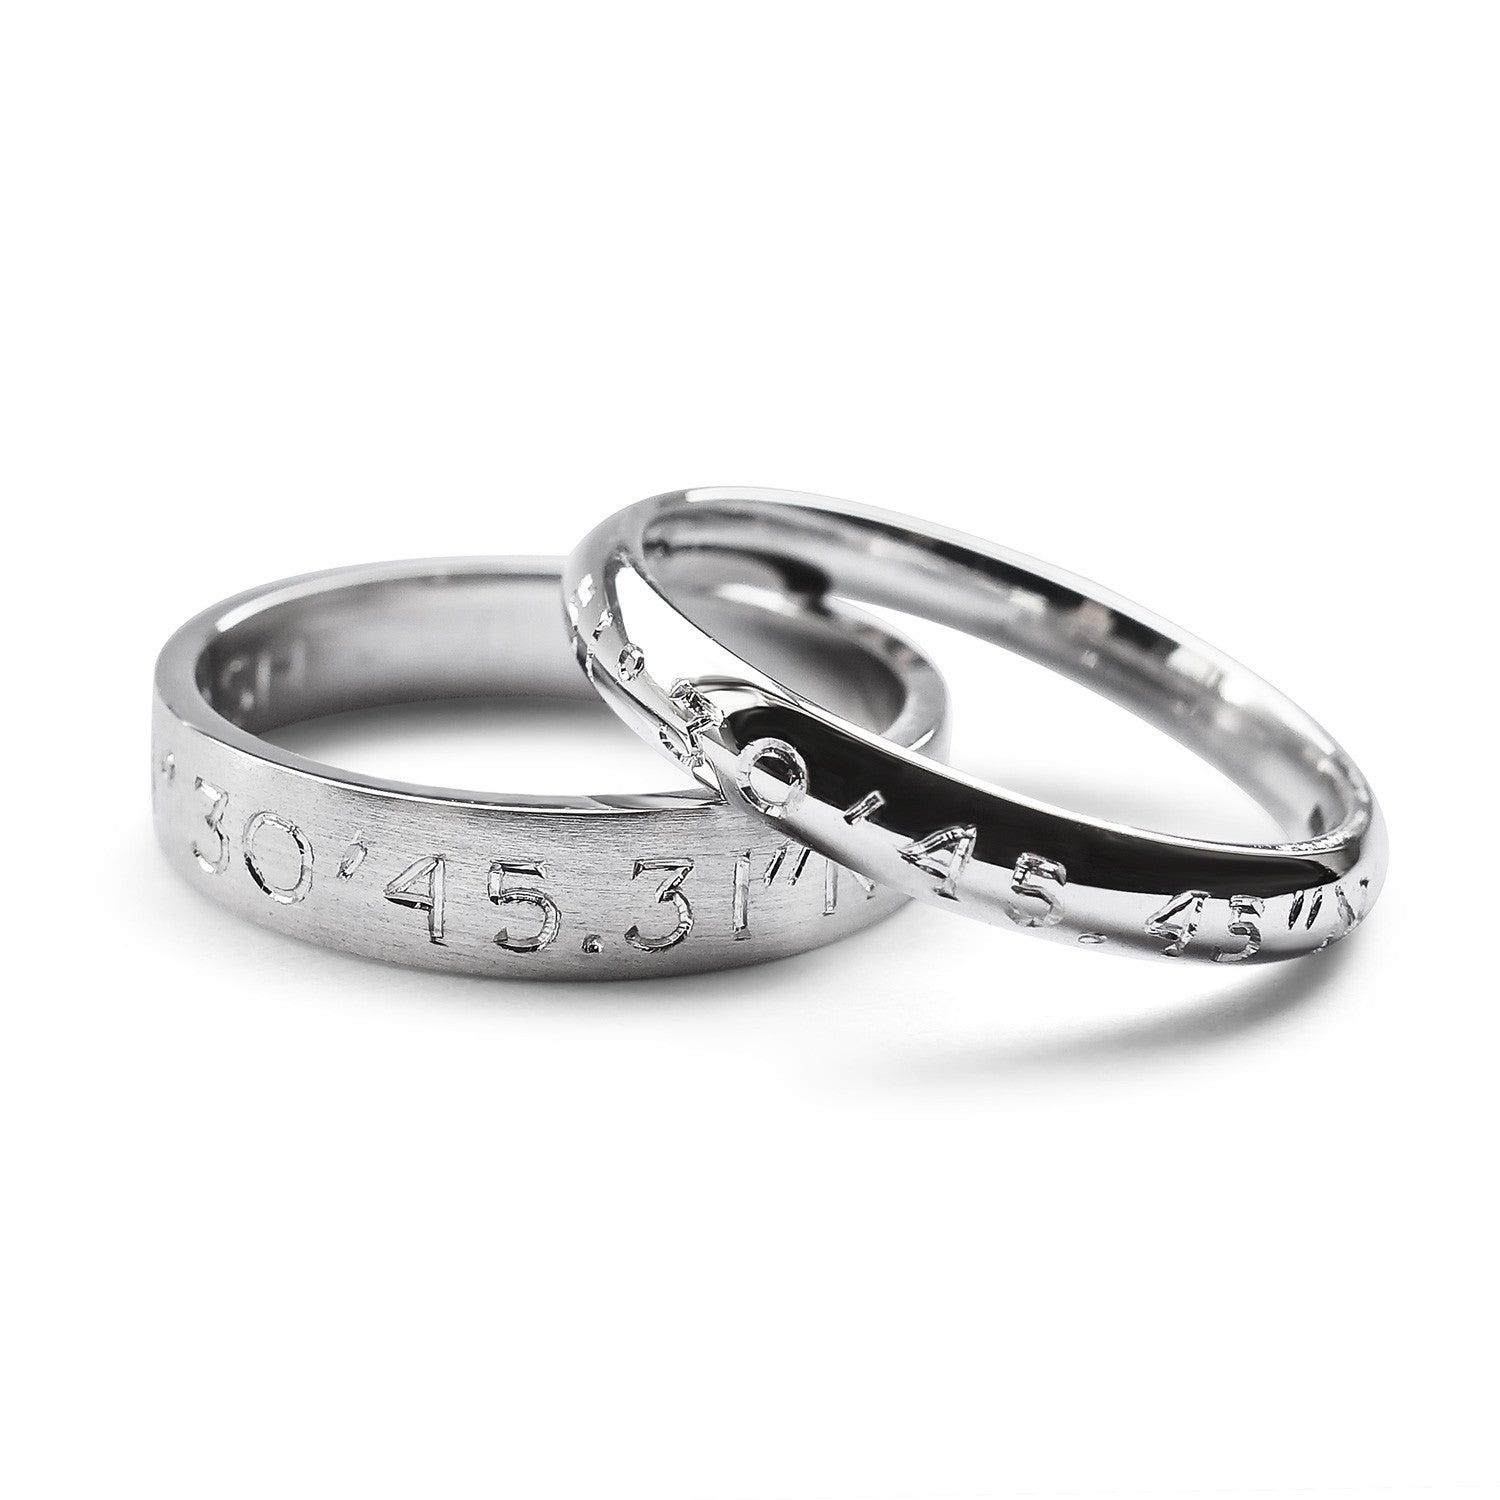 Bespoke wedding rings - hand-engraved coordinates in 100% recycled platinum